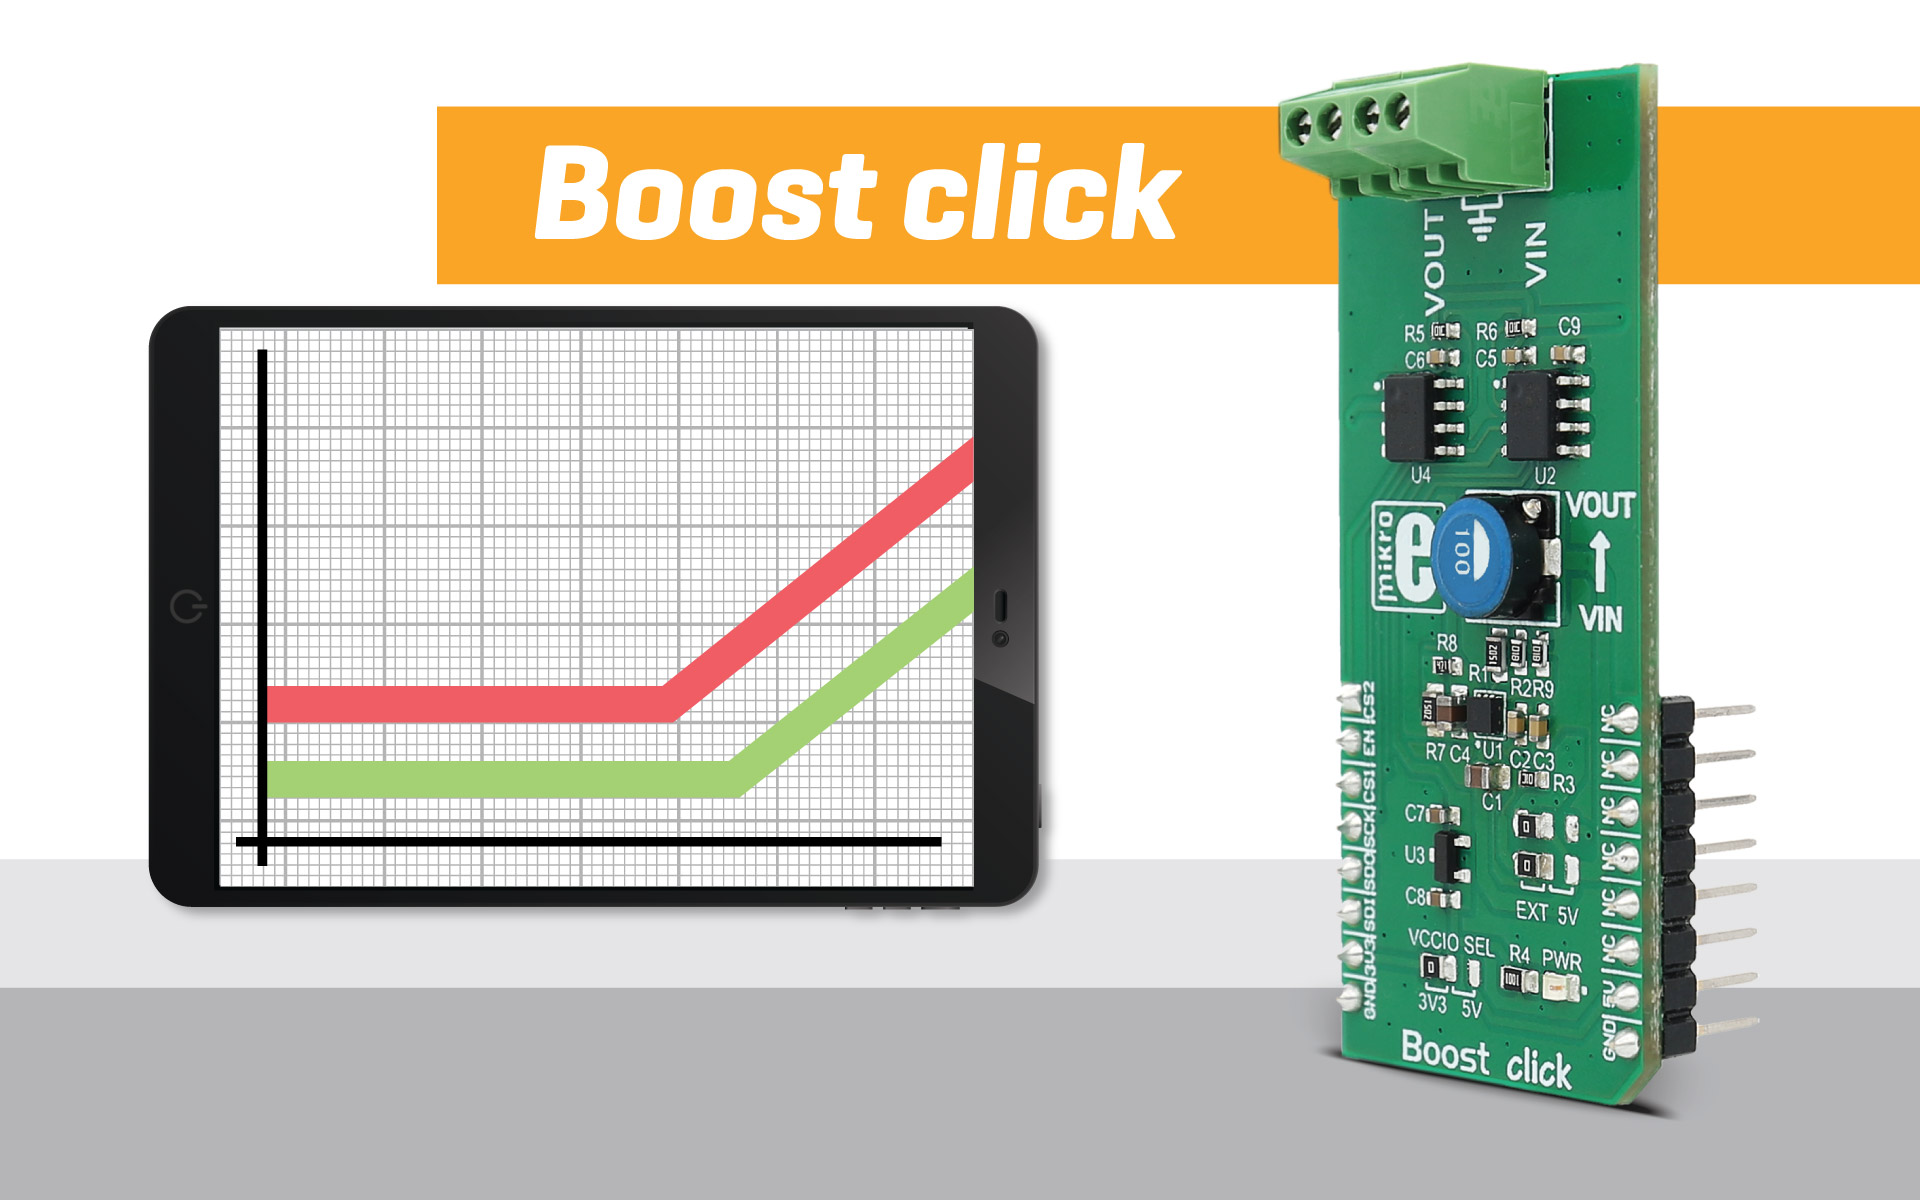 Boost click - step up the voltage